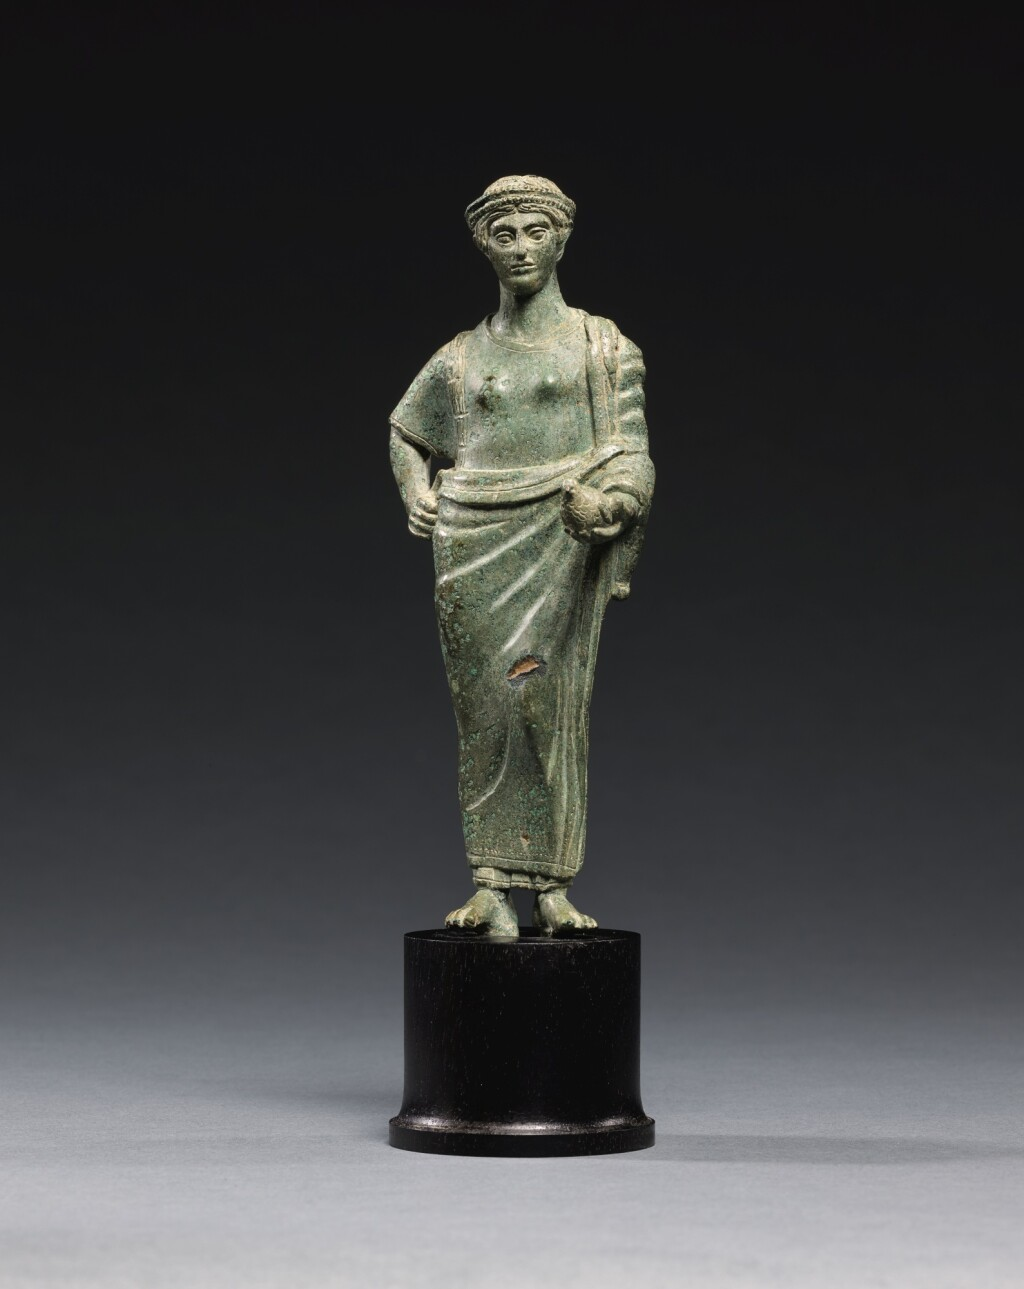 AN ETRUSCAN BRONZE FIGURE OF A WOMAN, CIRCA 425-400 B.C.